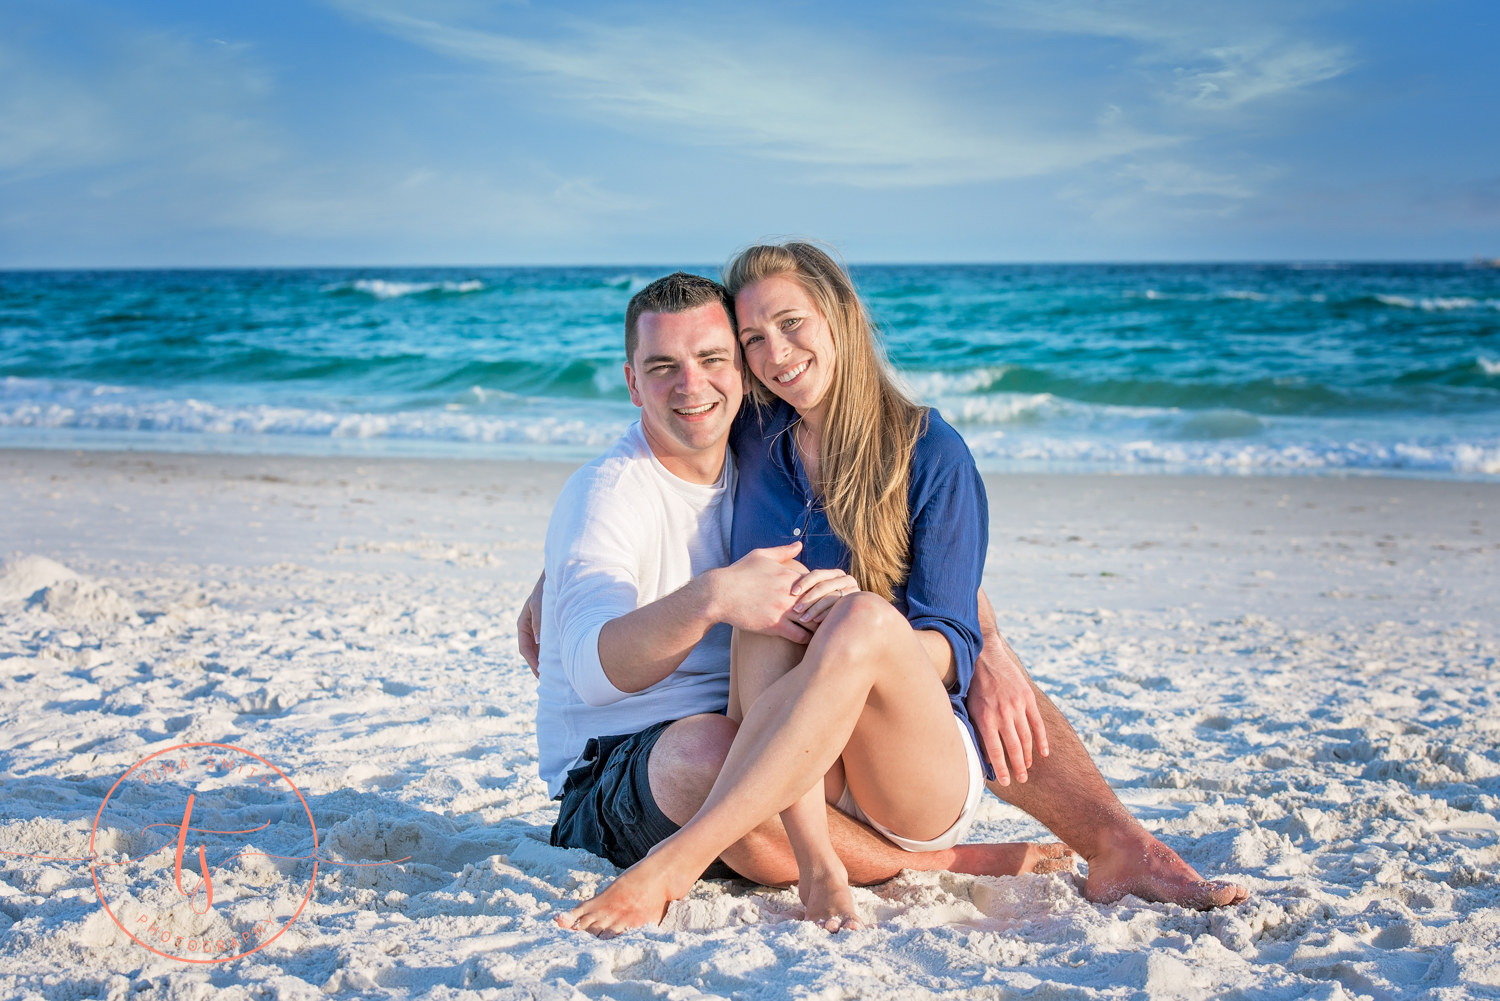 couple sitting on beach huggins showing off engagement ring